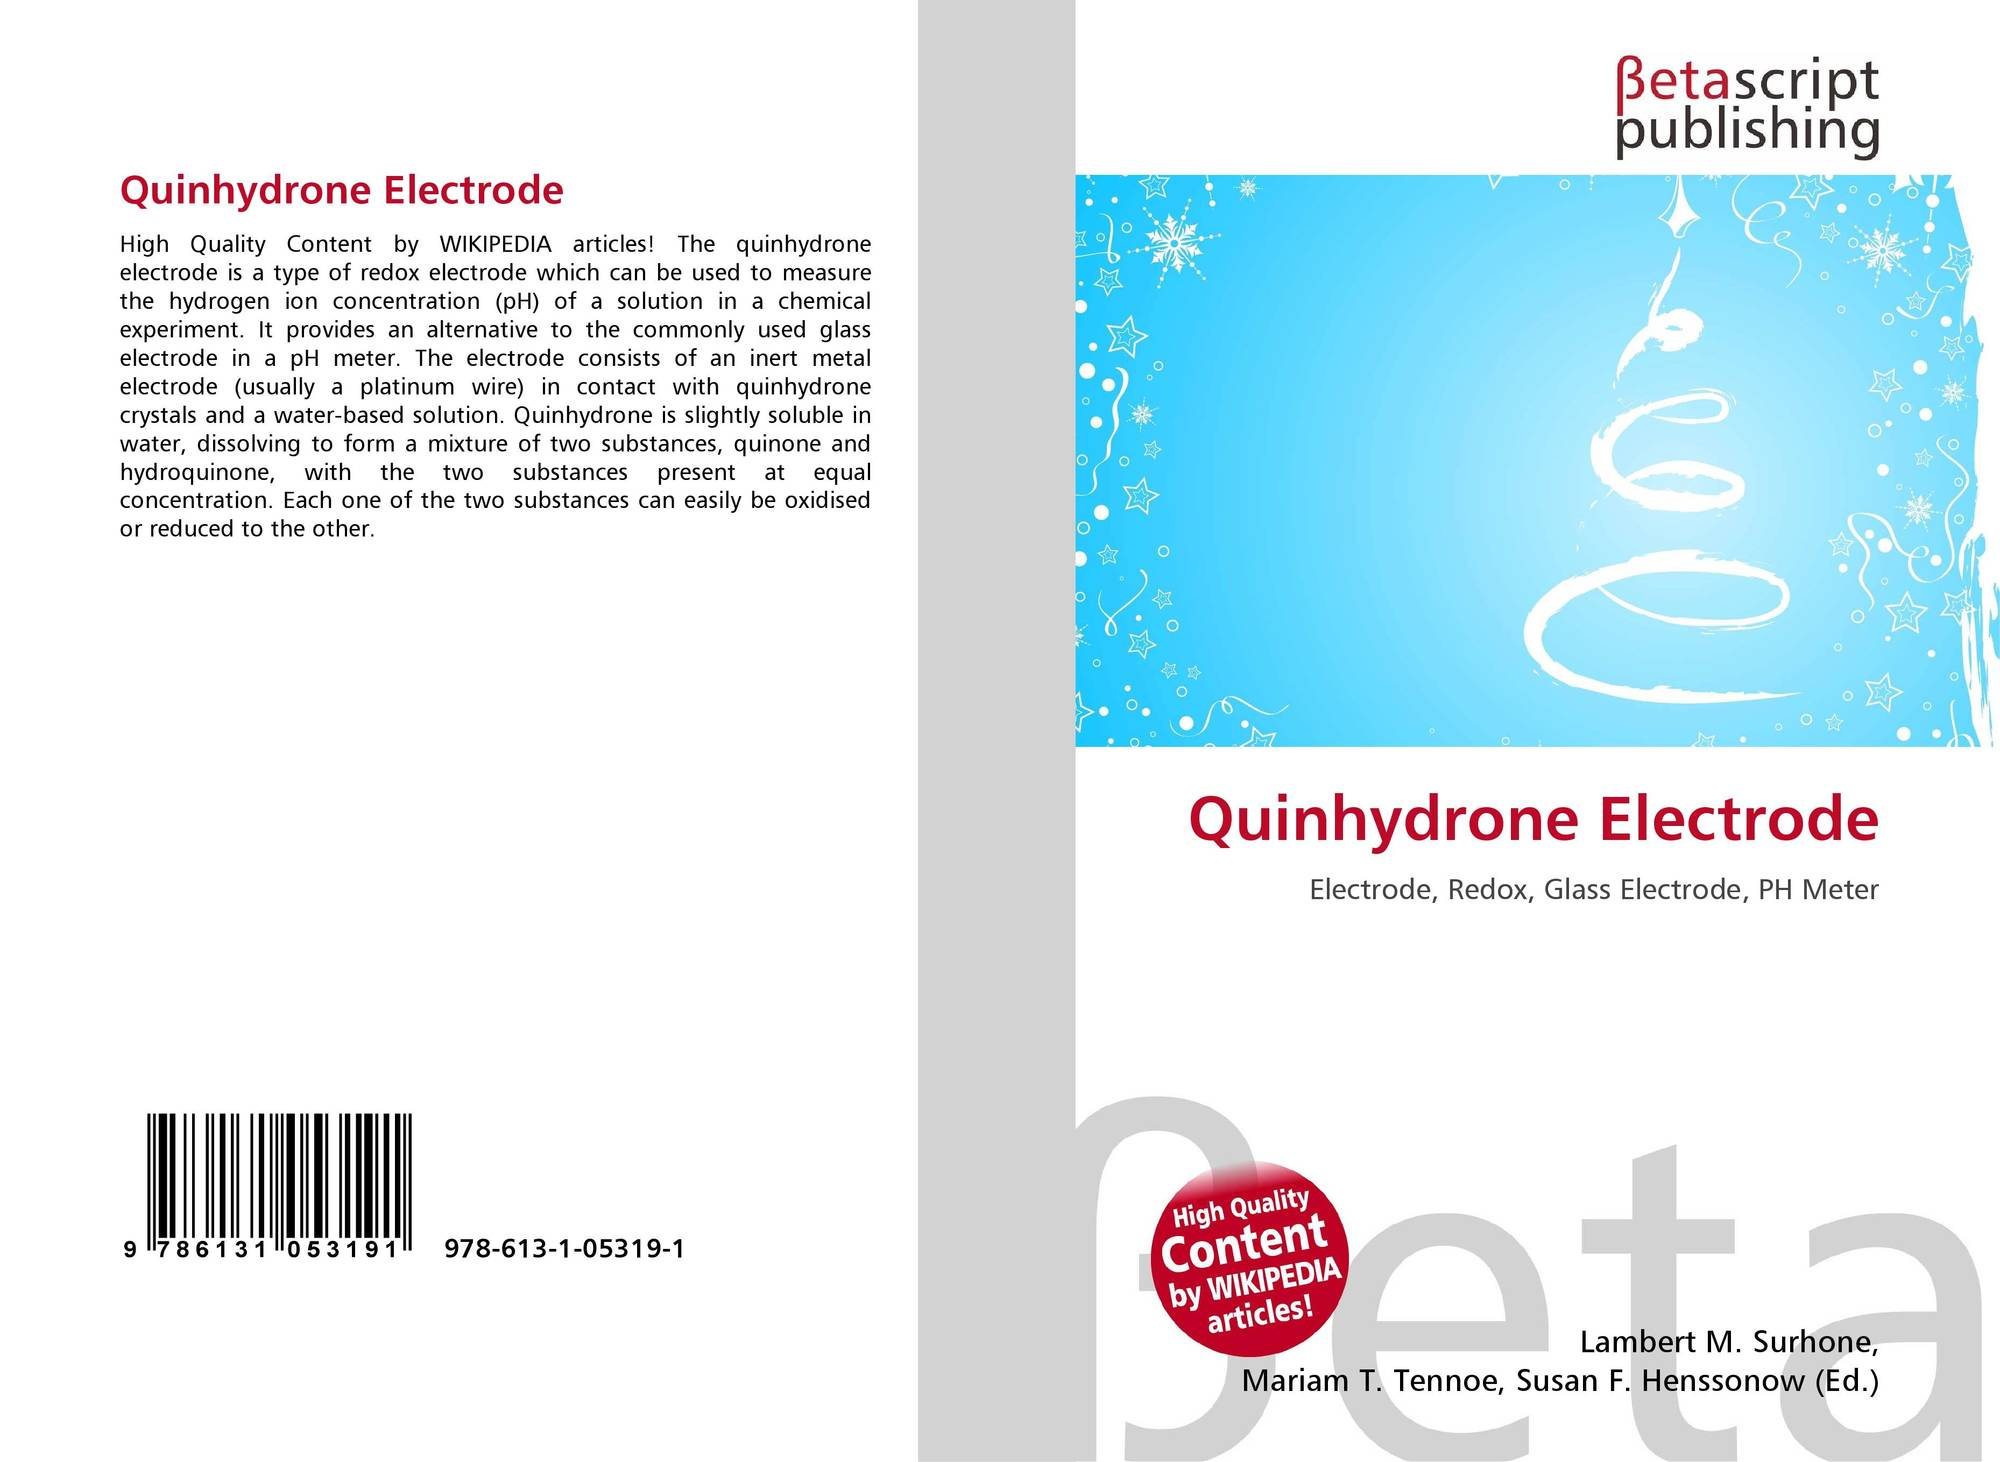 Quinhydrone Electrode, 978-613-1-05319-1, 6131053197 ,9786131053191